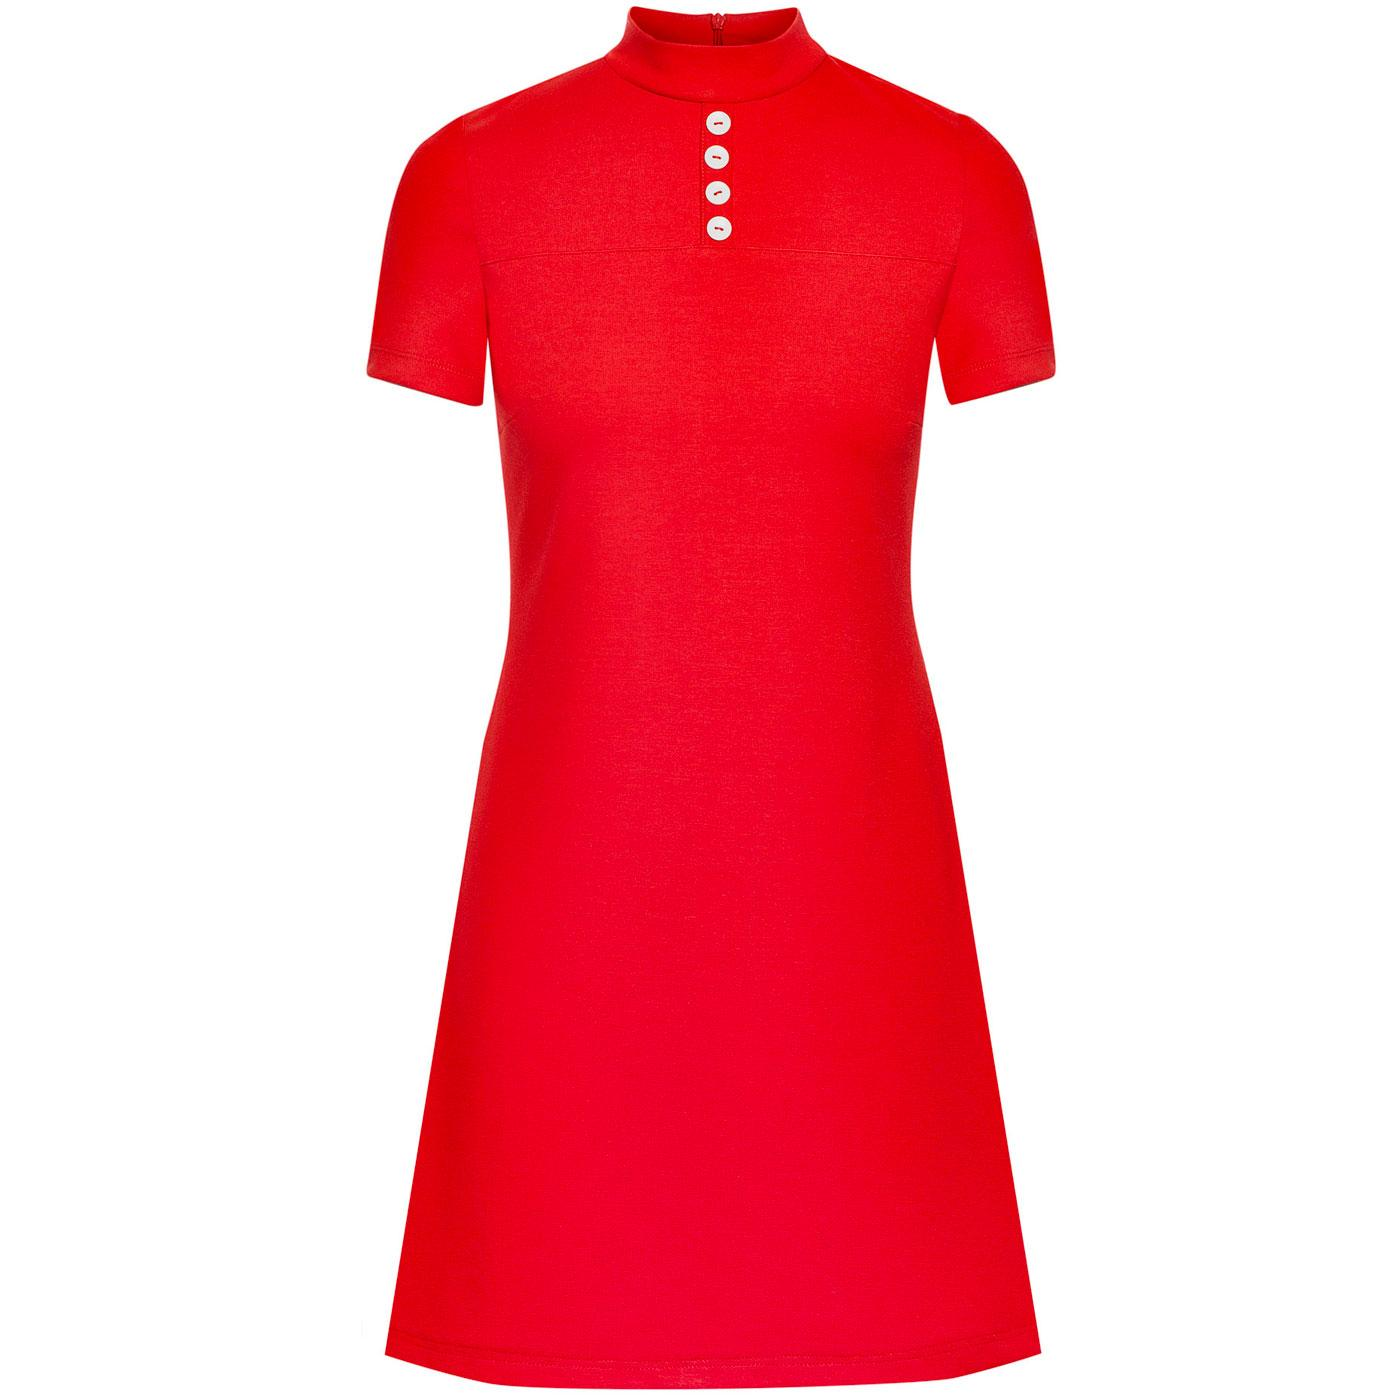 Pure Joy MADEMOISELLE YEYE 1960s Mod Dress (Red)